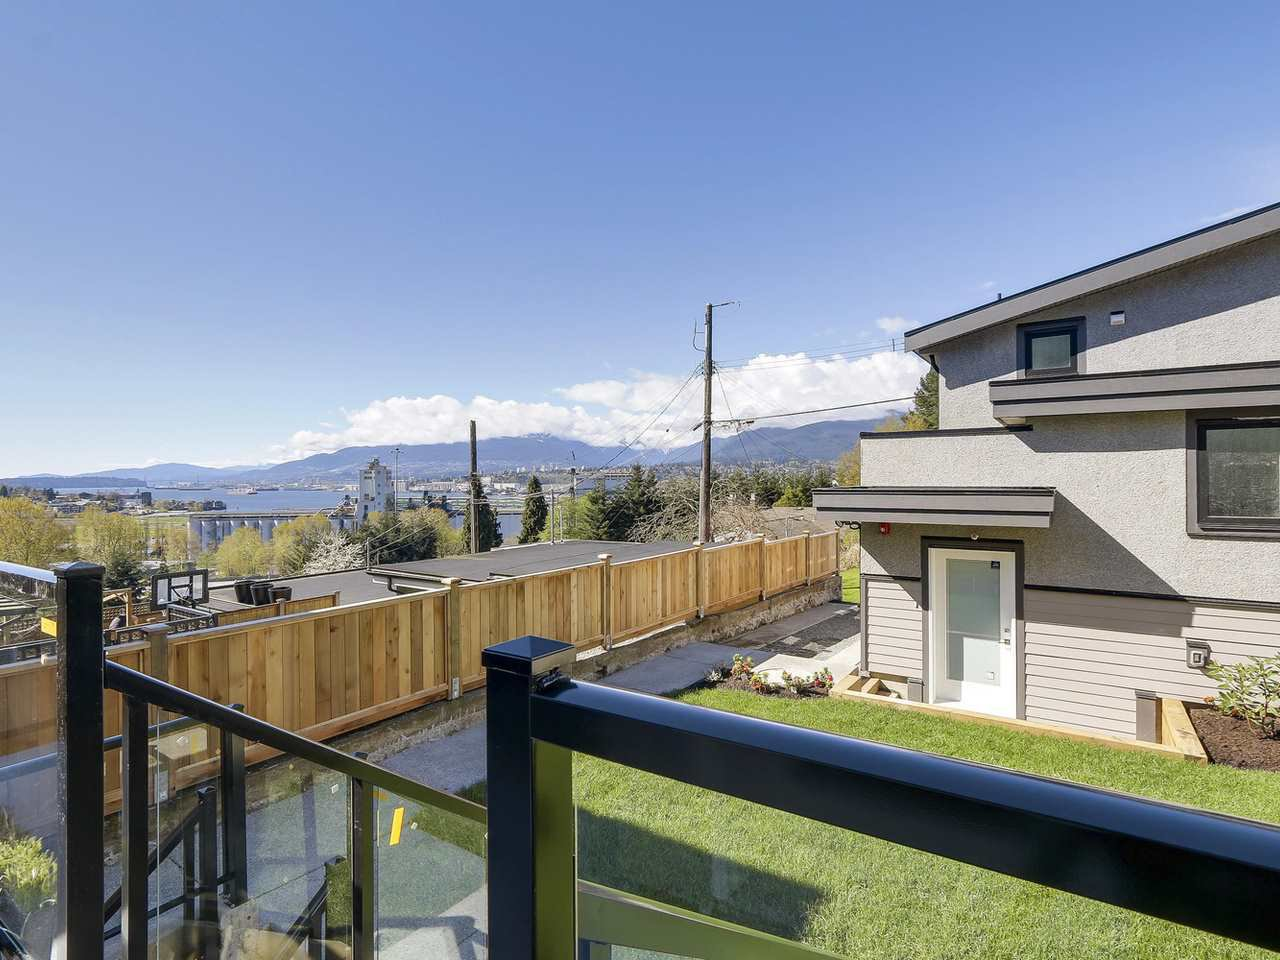 Photo 17: Photos: 3539 ETON STREET in Vancouver: Hastings East House for sale (Vancouver East)  : MLS®# R2159493